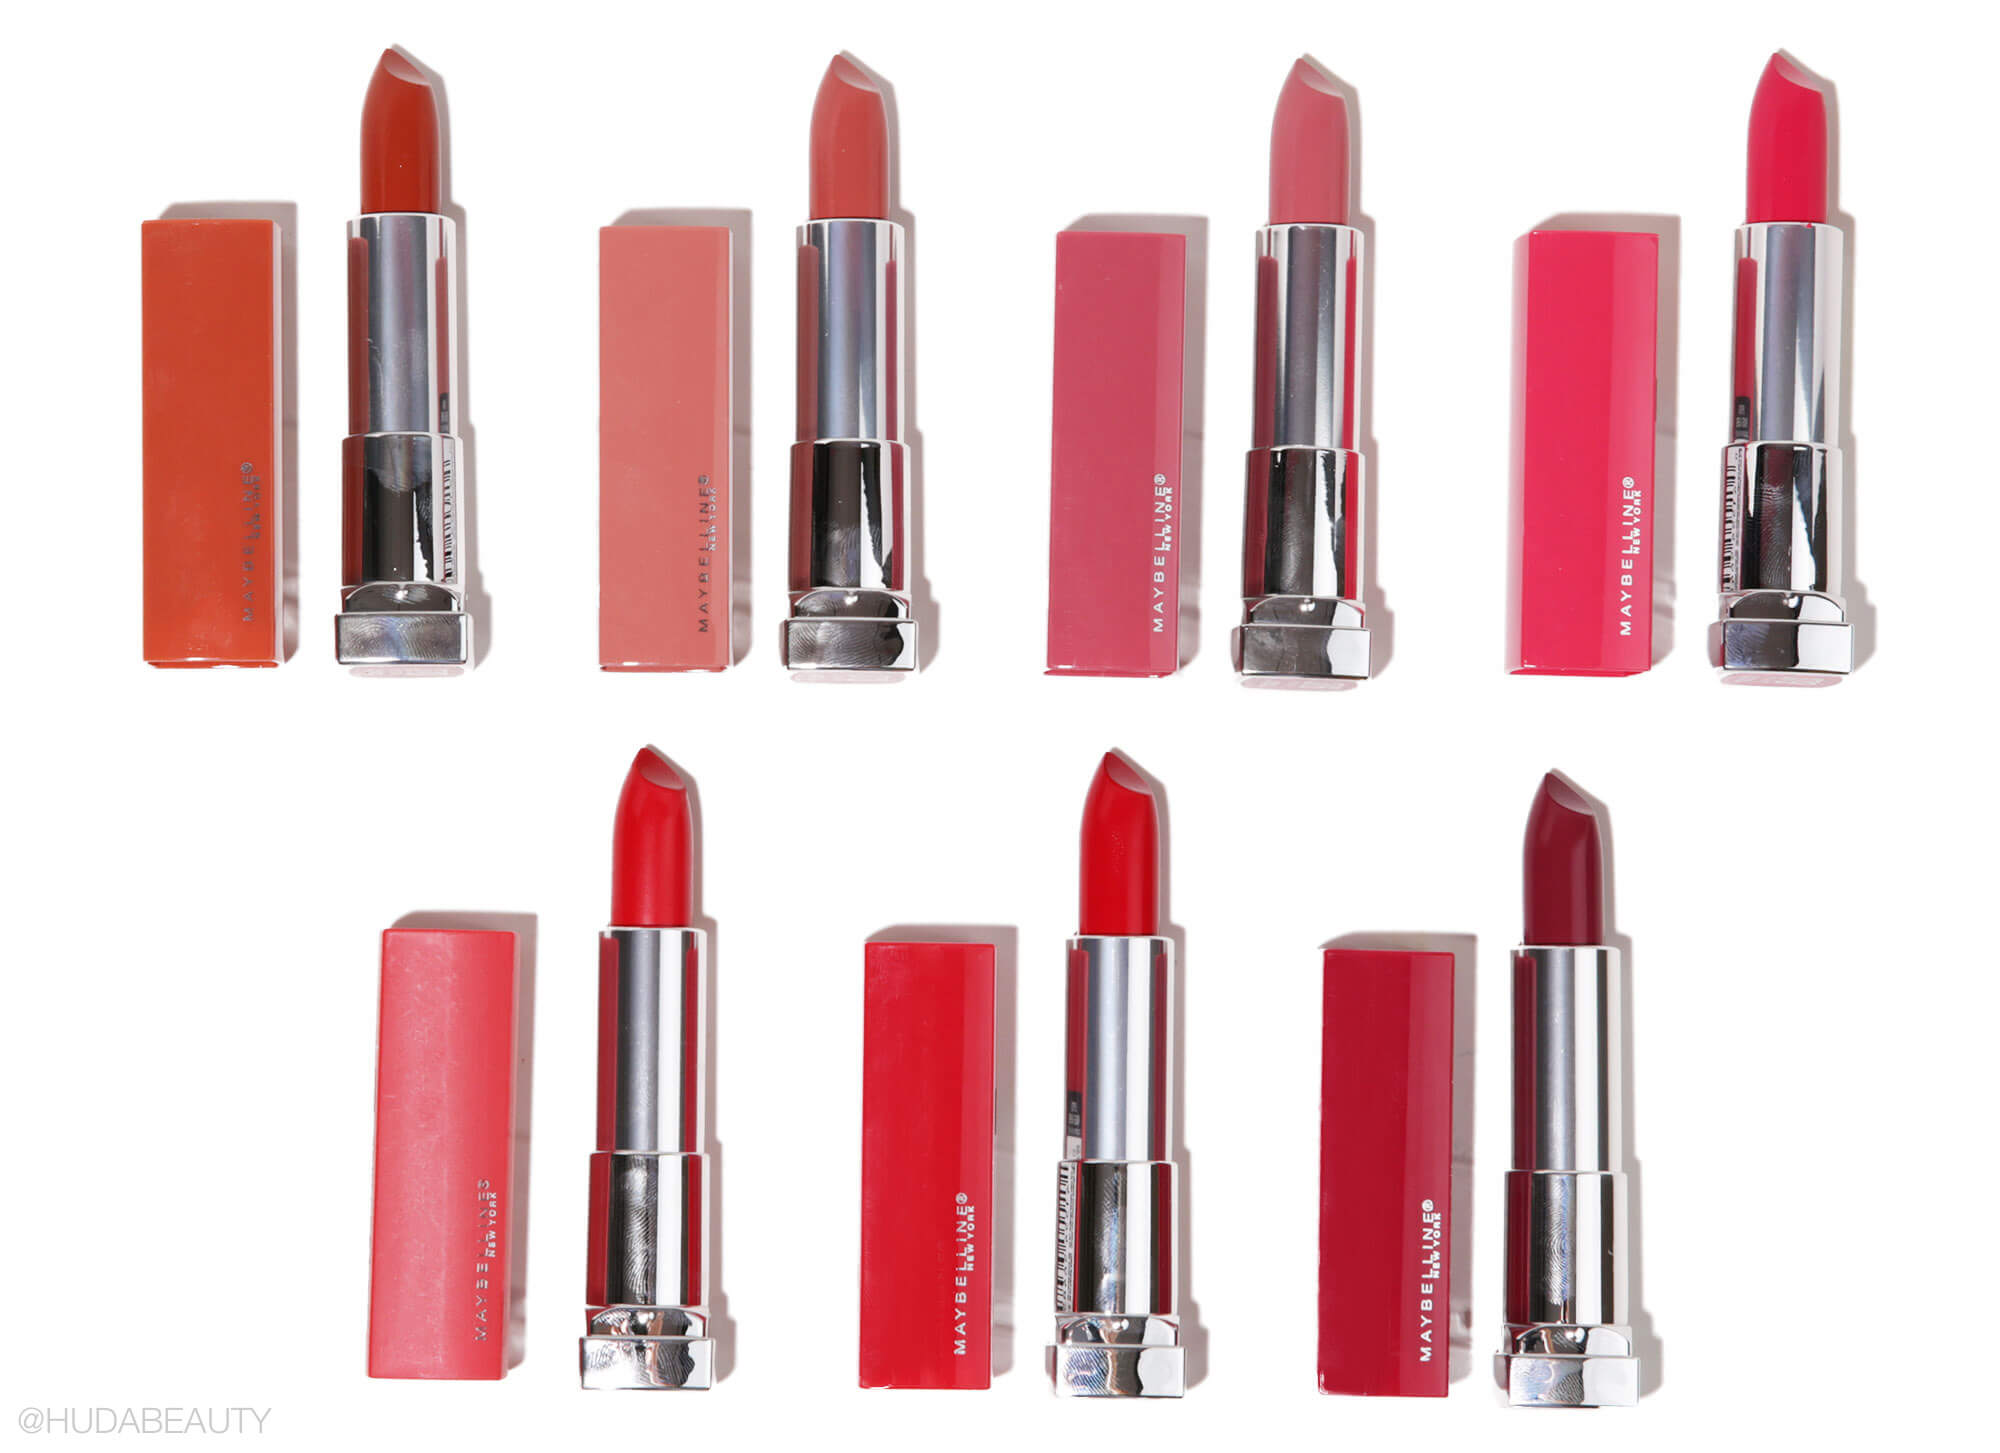 Maybelline Made For All Lipstick review